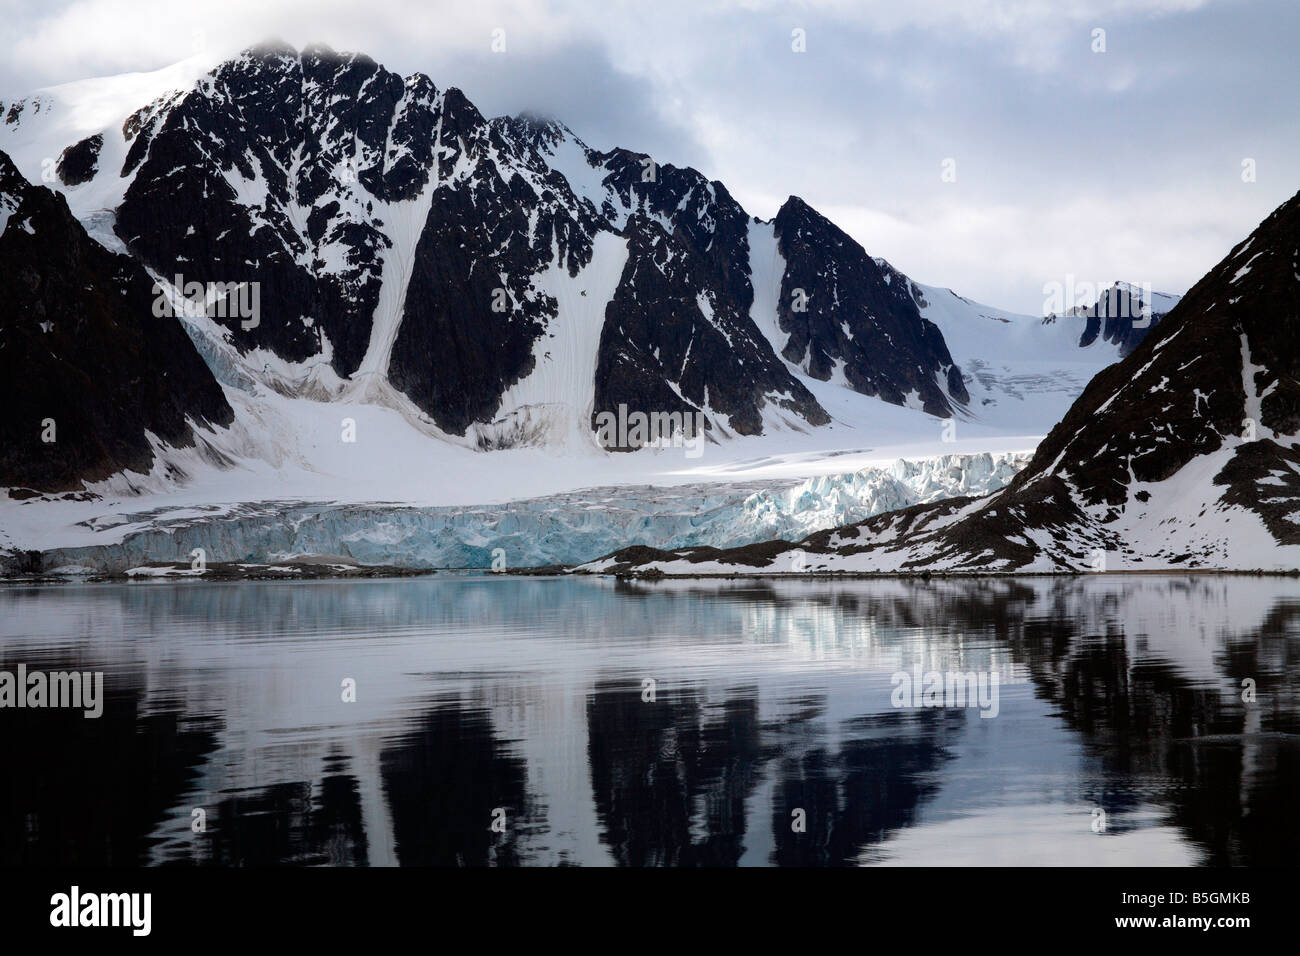 Spitsbergen Snowy Mountains Glacier Reflections - Stock Image